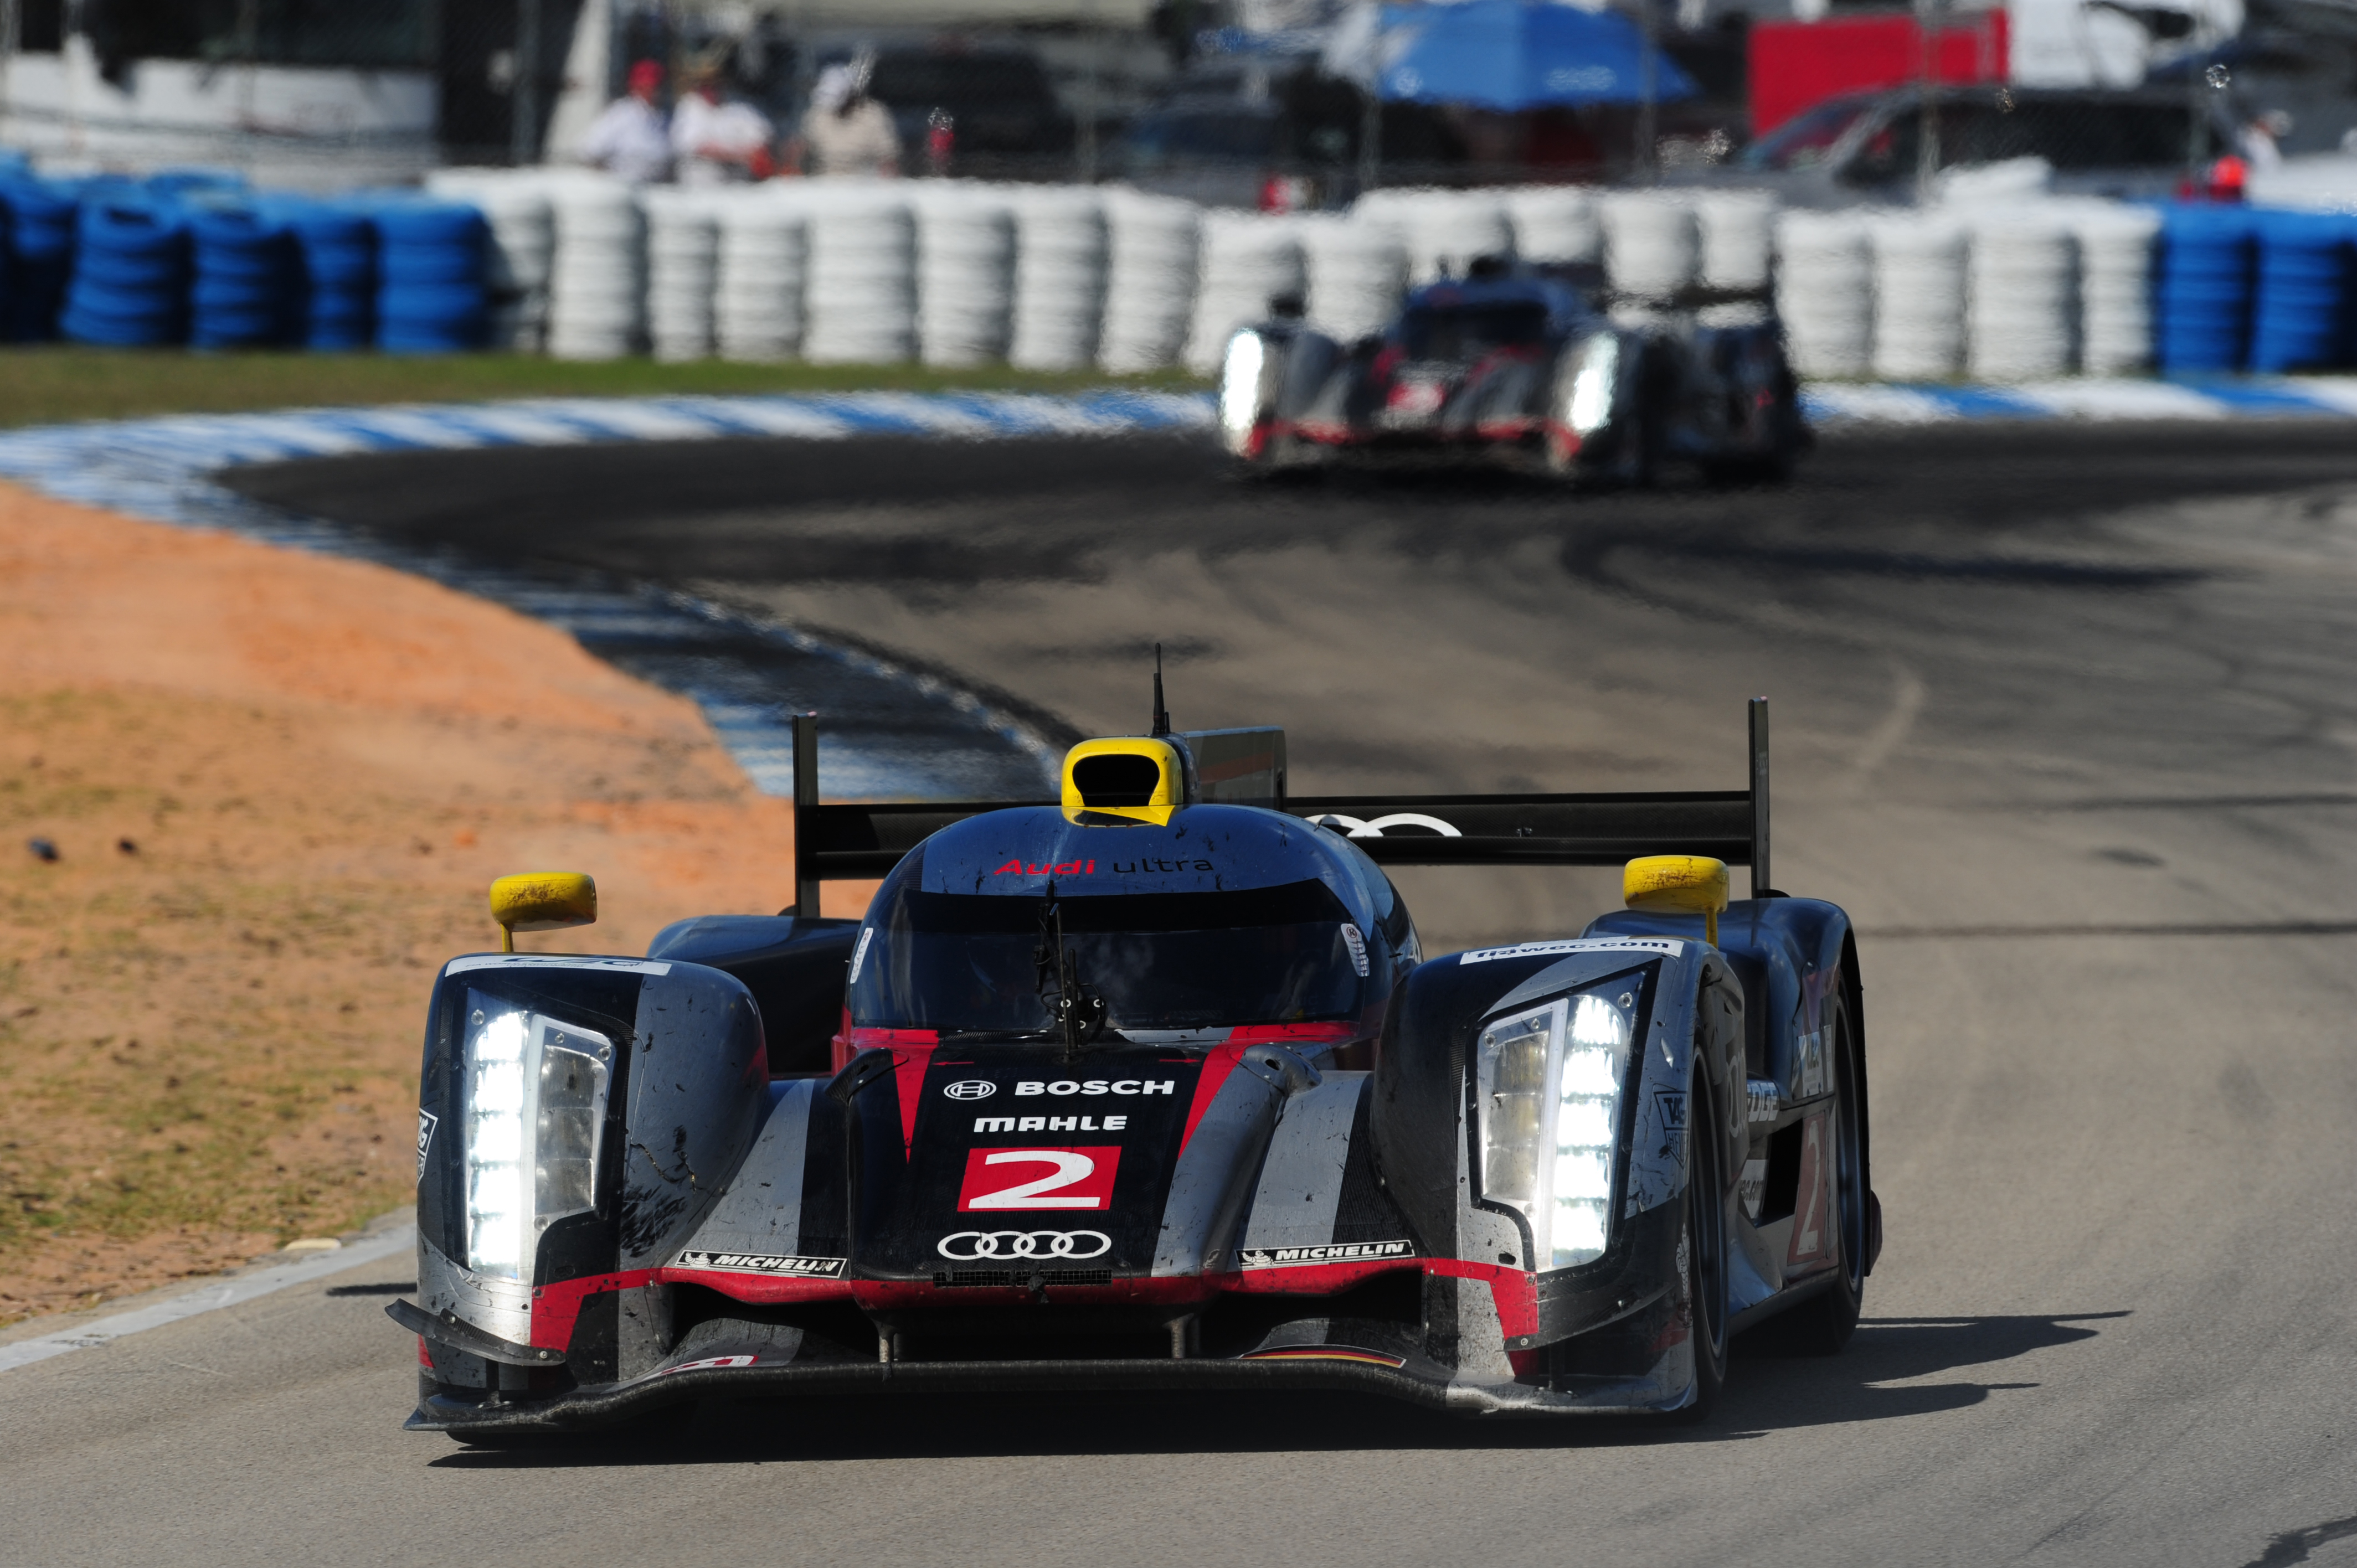 Michelin and Audi combine for victory at Sebring